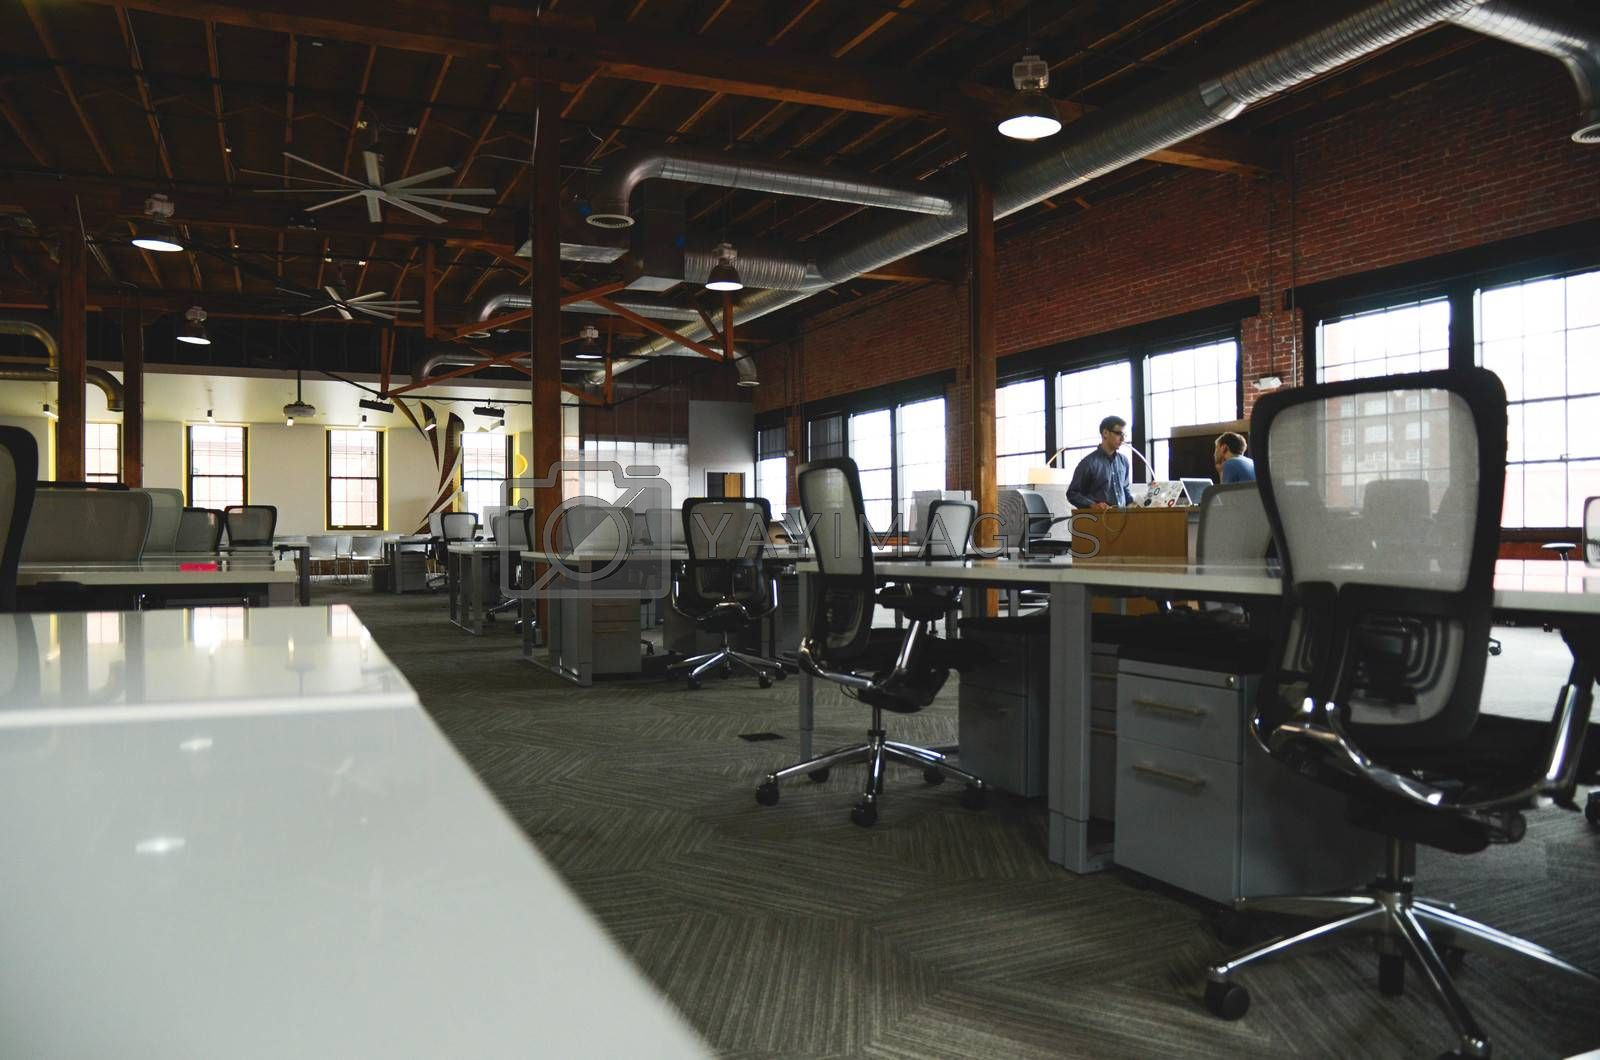 Startup office room during working time